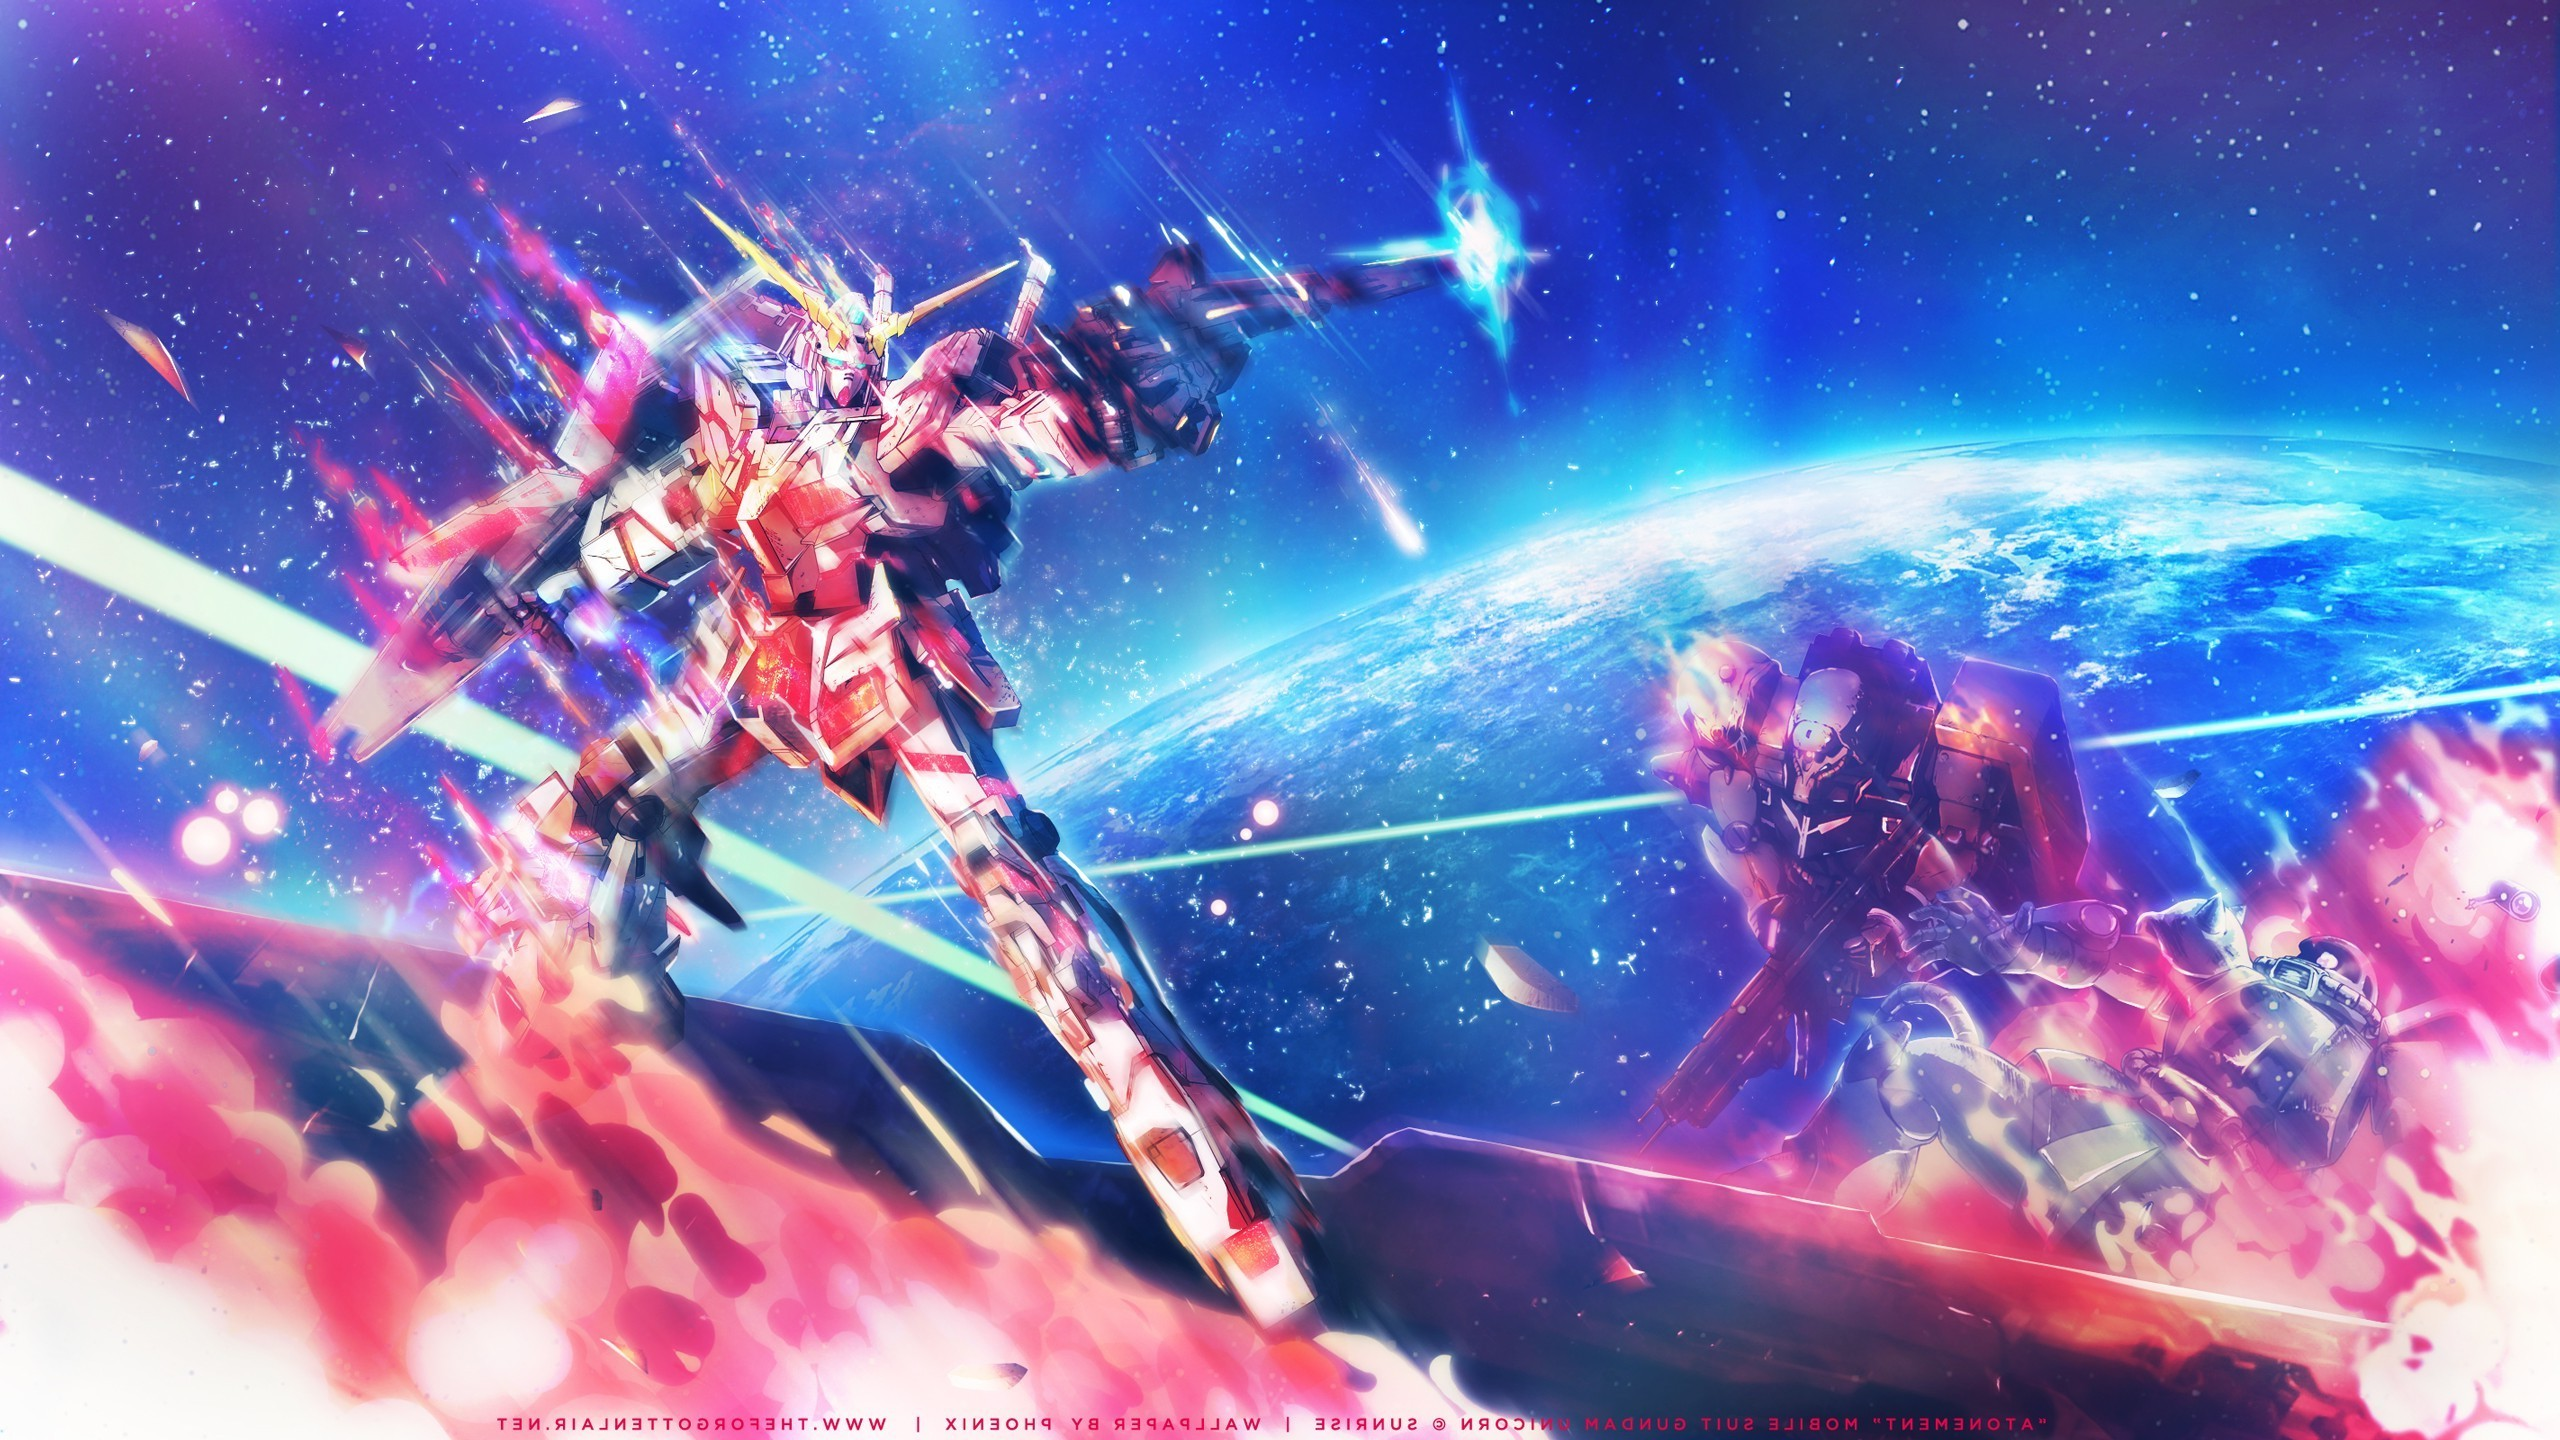 Unicorn desktop background 74 images 2560x1440 mobile suit gundam unicorn mech mobile suit gundam gundam wallpapers hd voltagebd Image collections